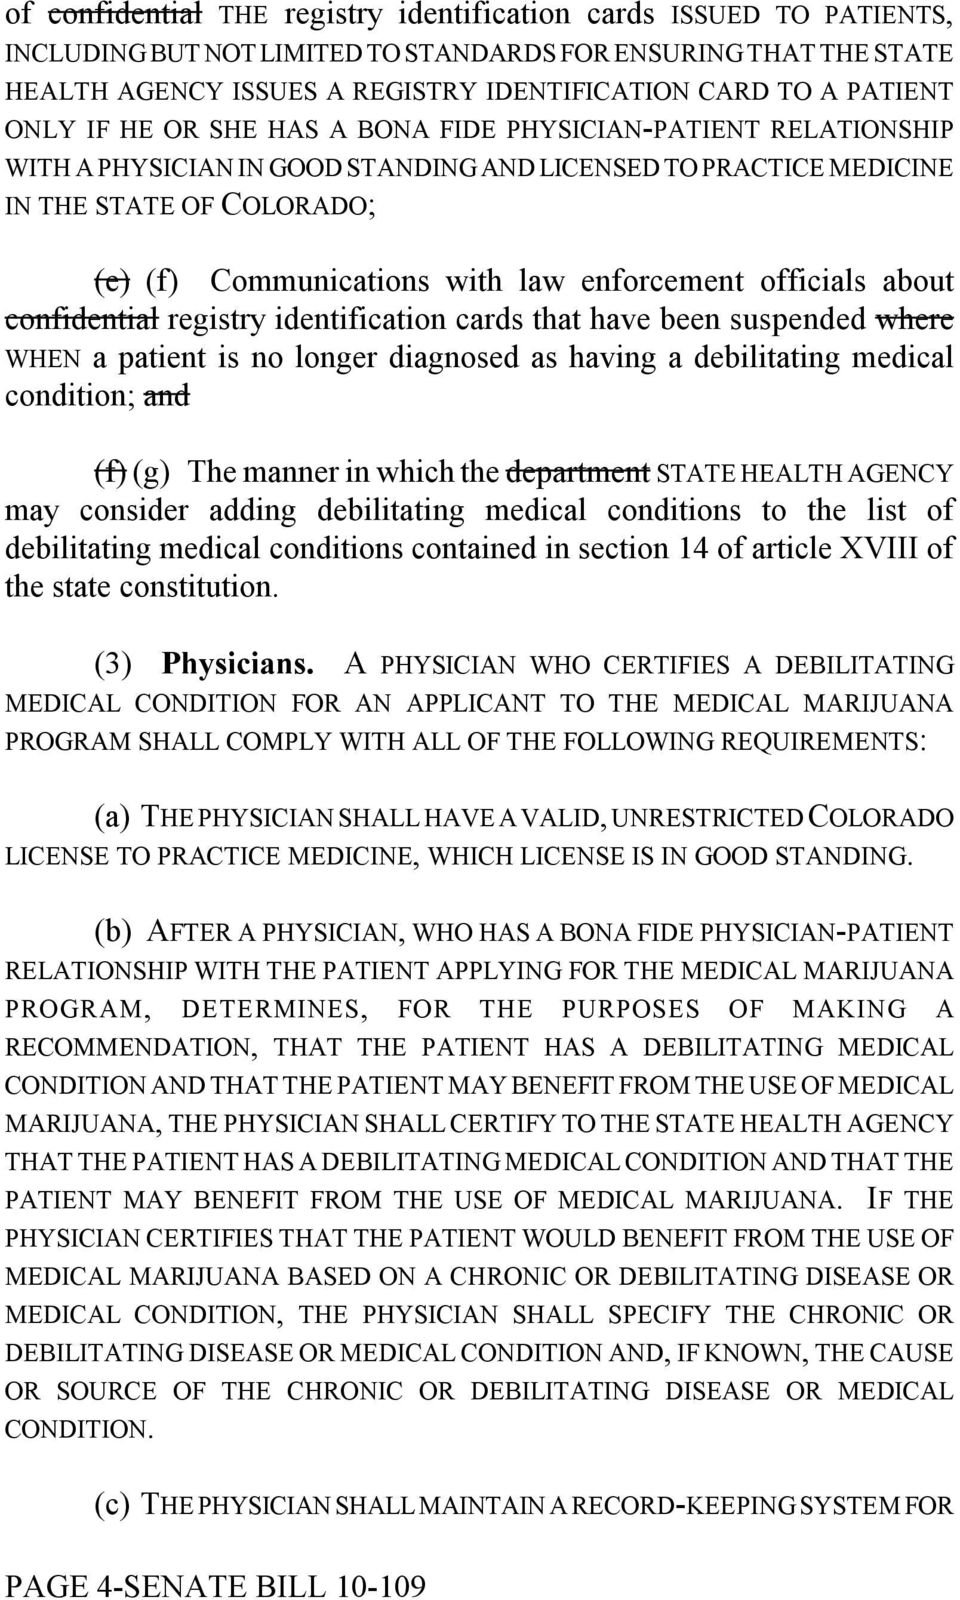 enforcement officials about confidential registry identification cards that have been suspended where WHEN a patient is no longer diagnosed as having a debilitating medical condition; and (f) (g) The